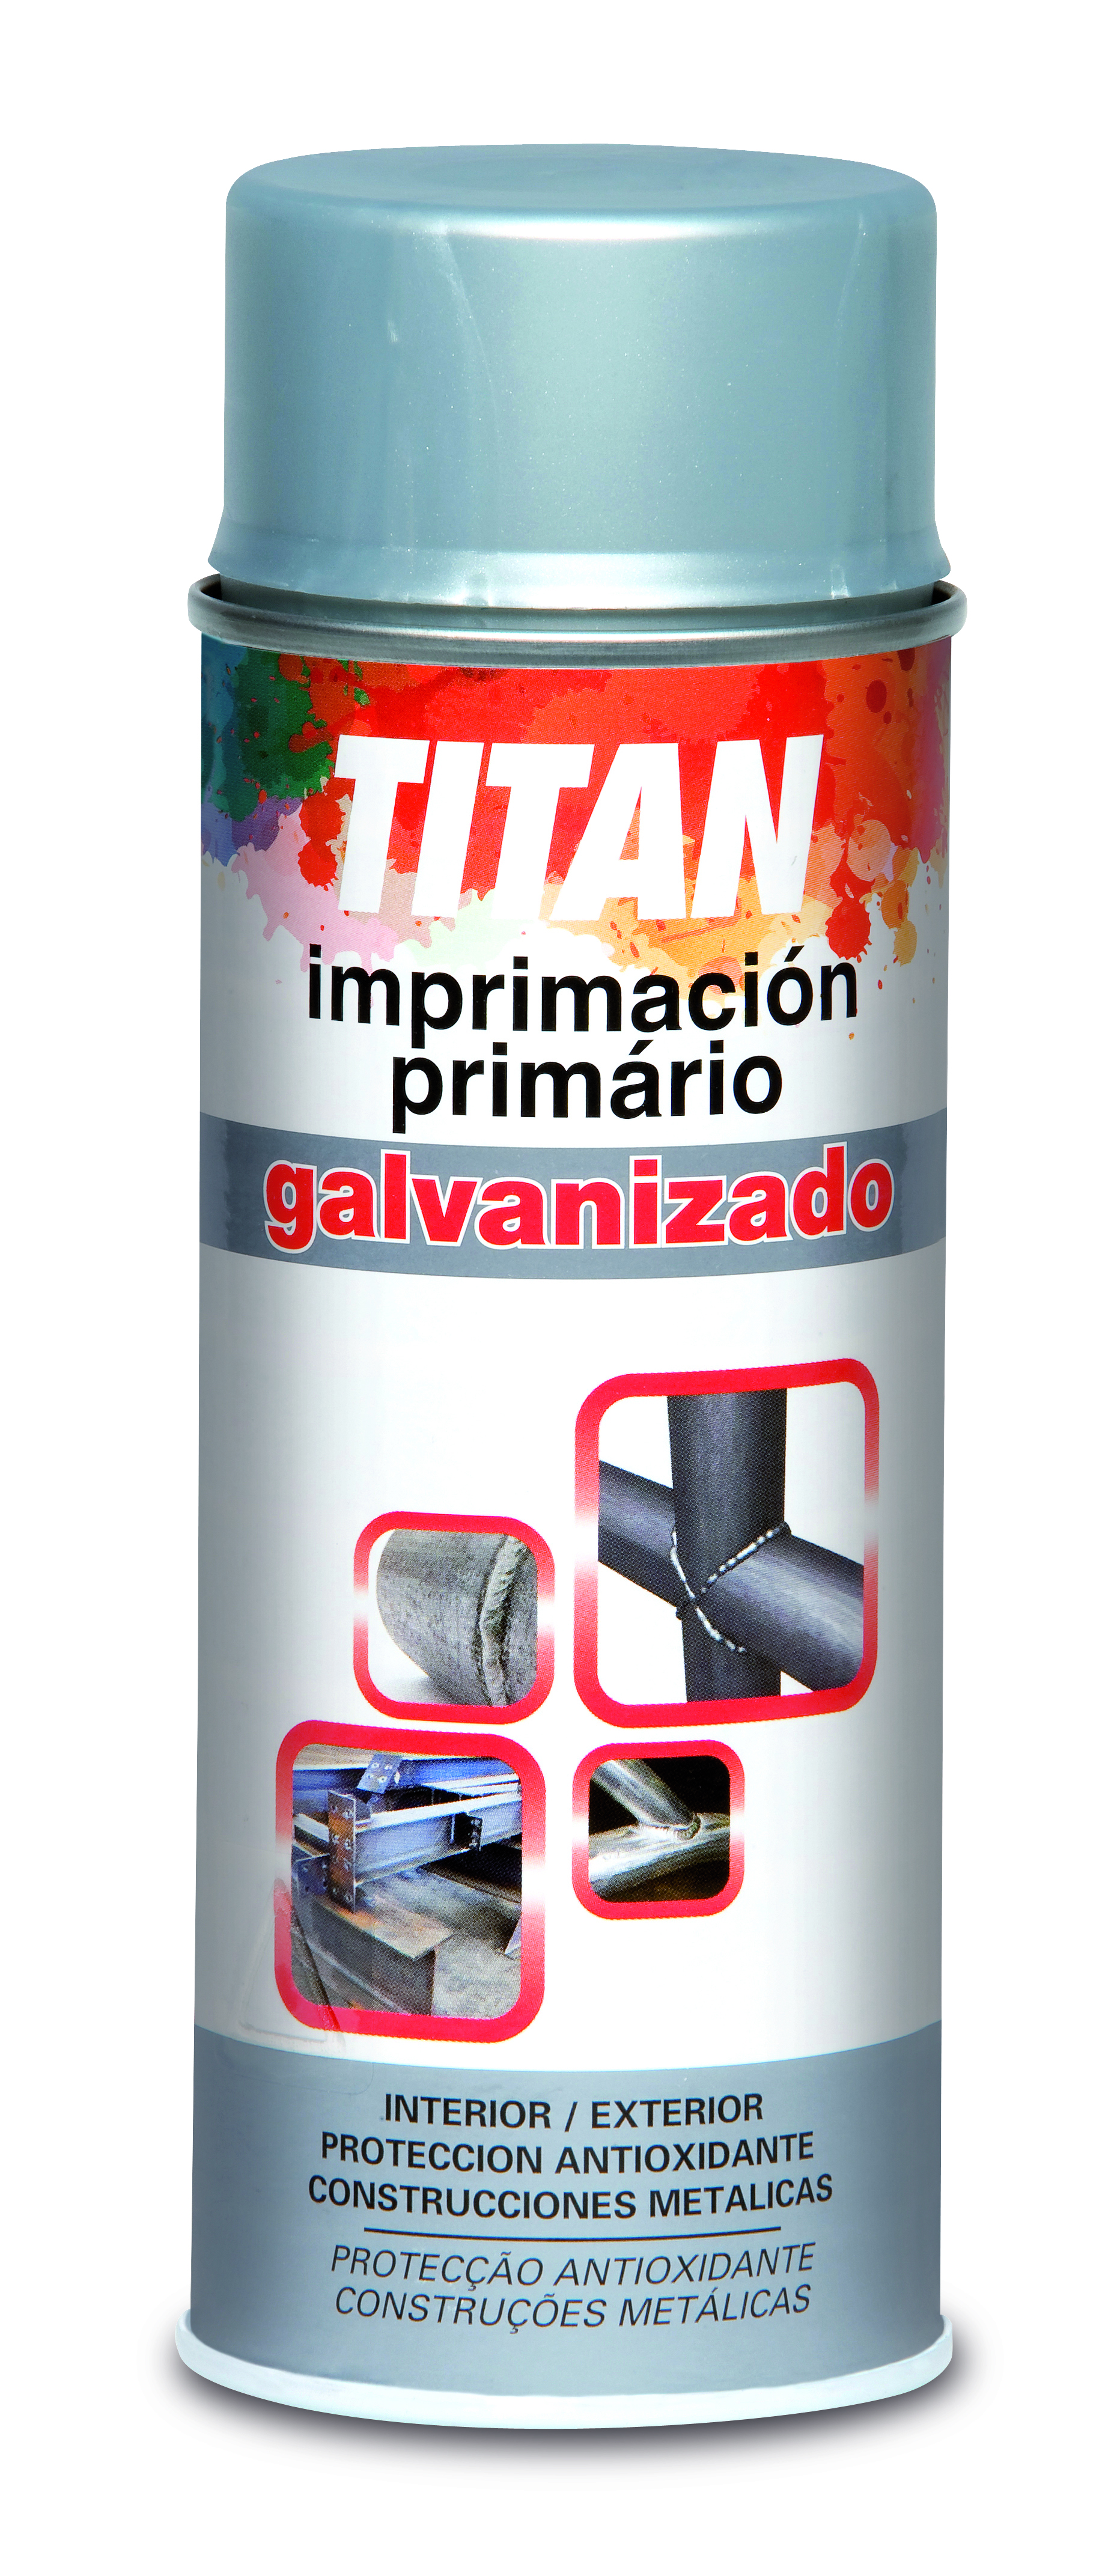 PRIMER FOR GALVANIZED SURFACES